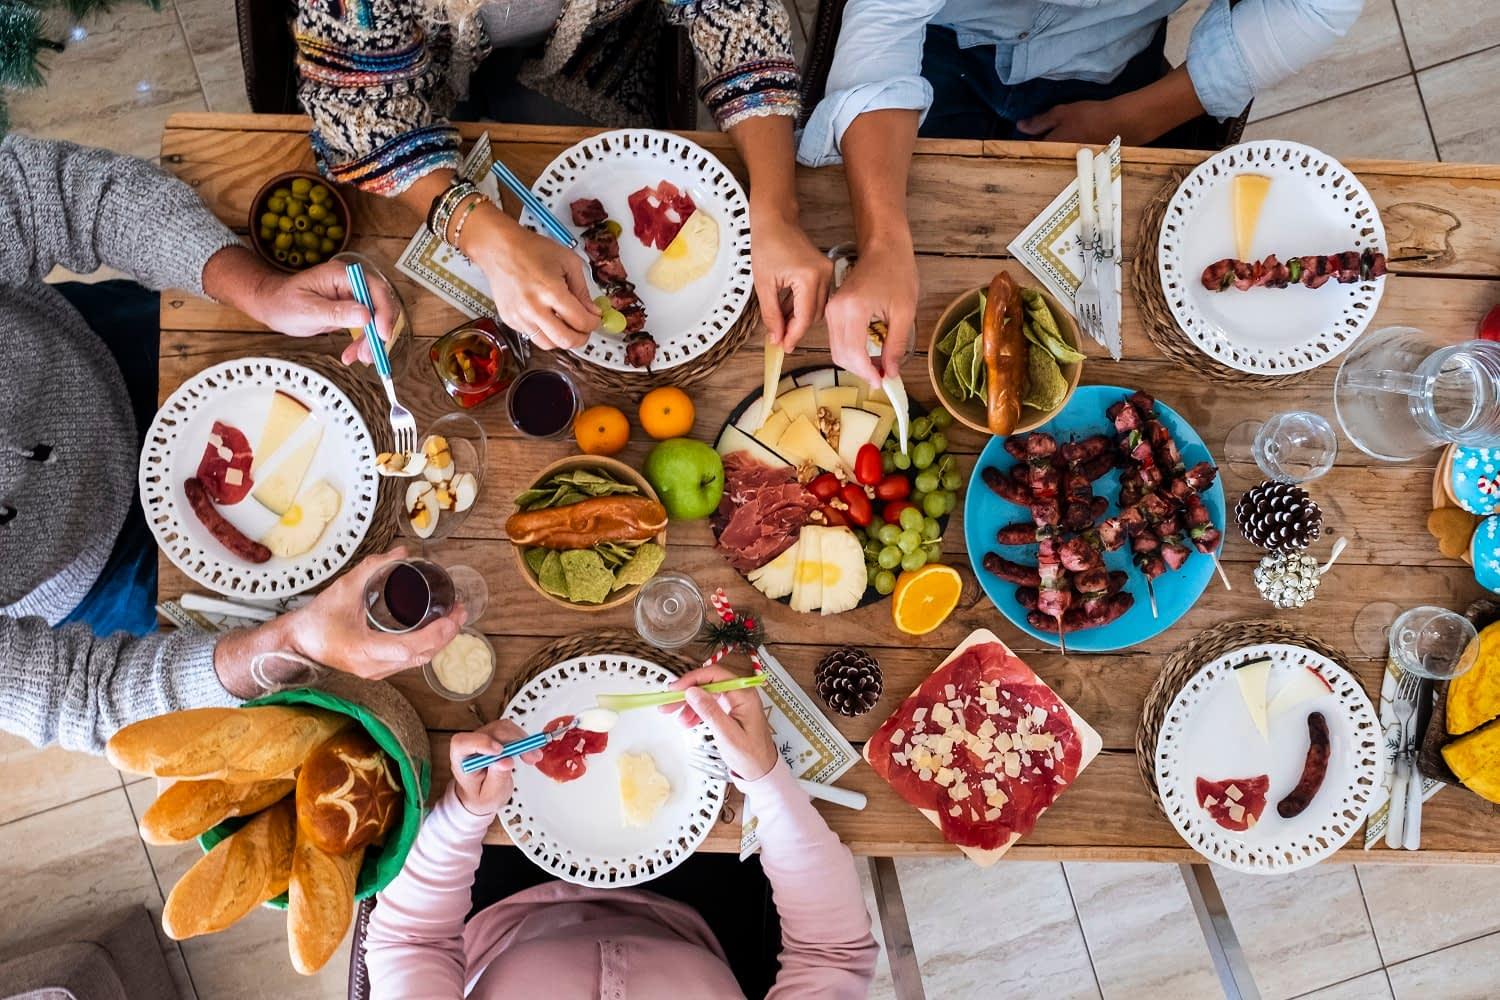 Family friends have fun together in winter eating food on a wooden table - vertical top view